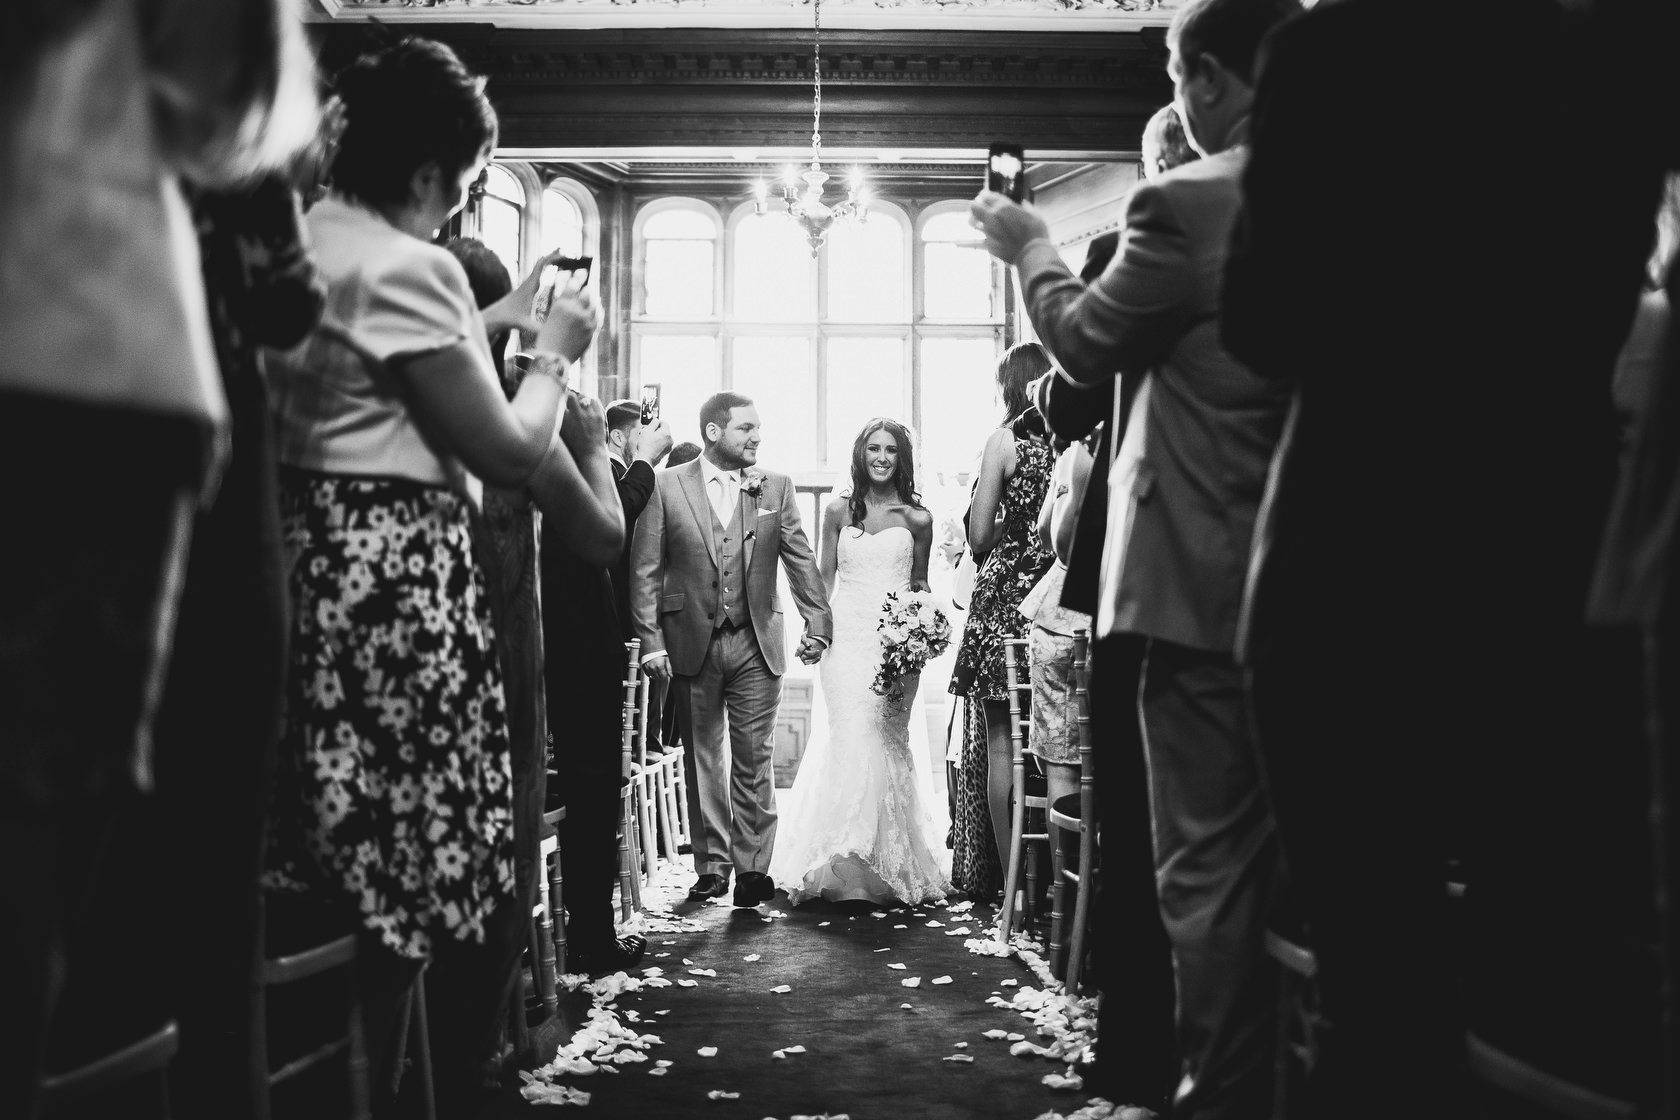 wedding photography thornton manor, creative UK wedding photographer ARJ Photography http://www.arj-photo.co.uk